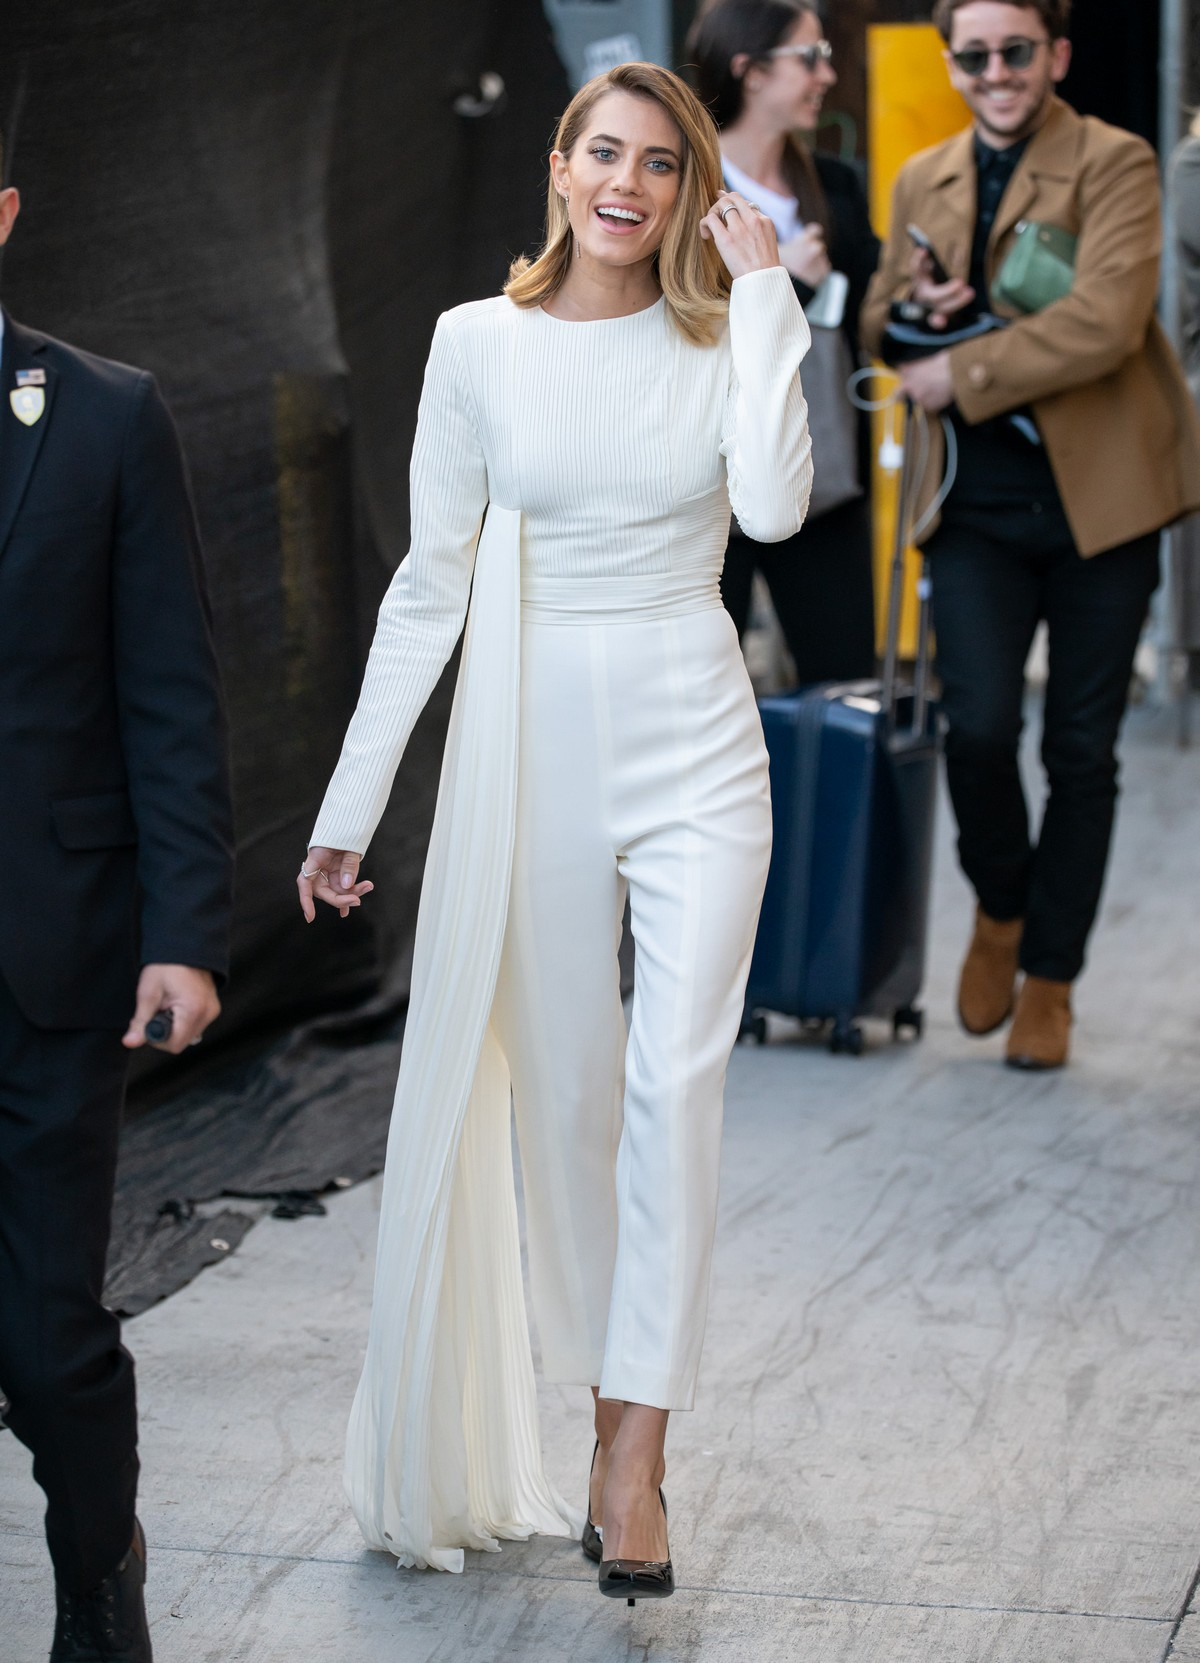 Allison Williams in White Jumpsuit with Long Sleeves at Jimmy Kimmel Live! in Hollywood 2019/05/15 4